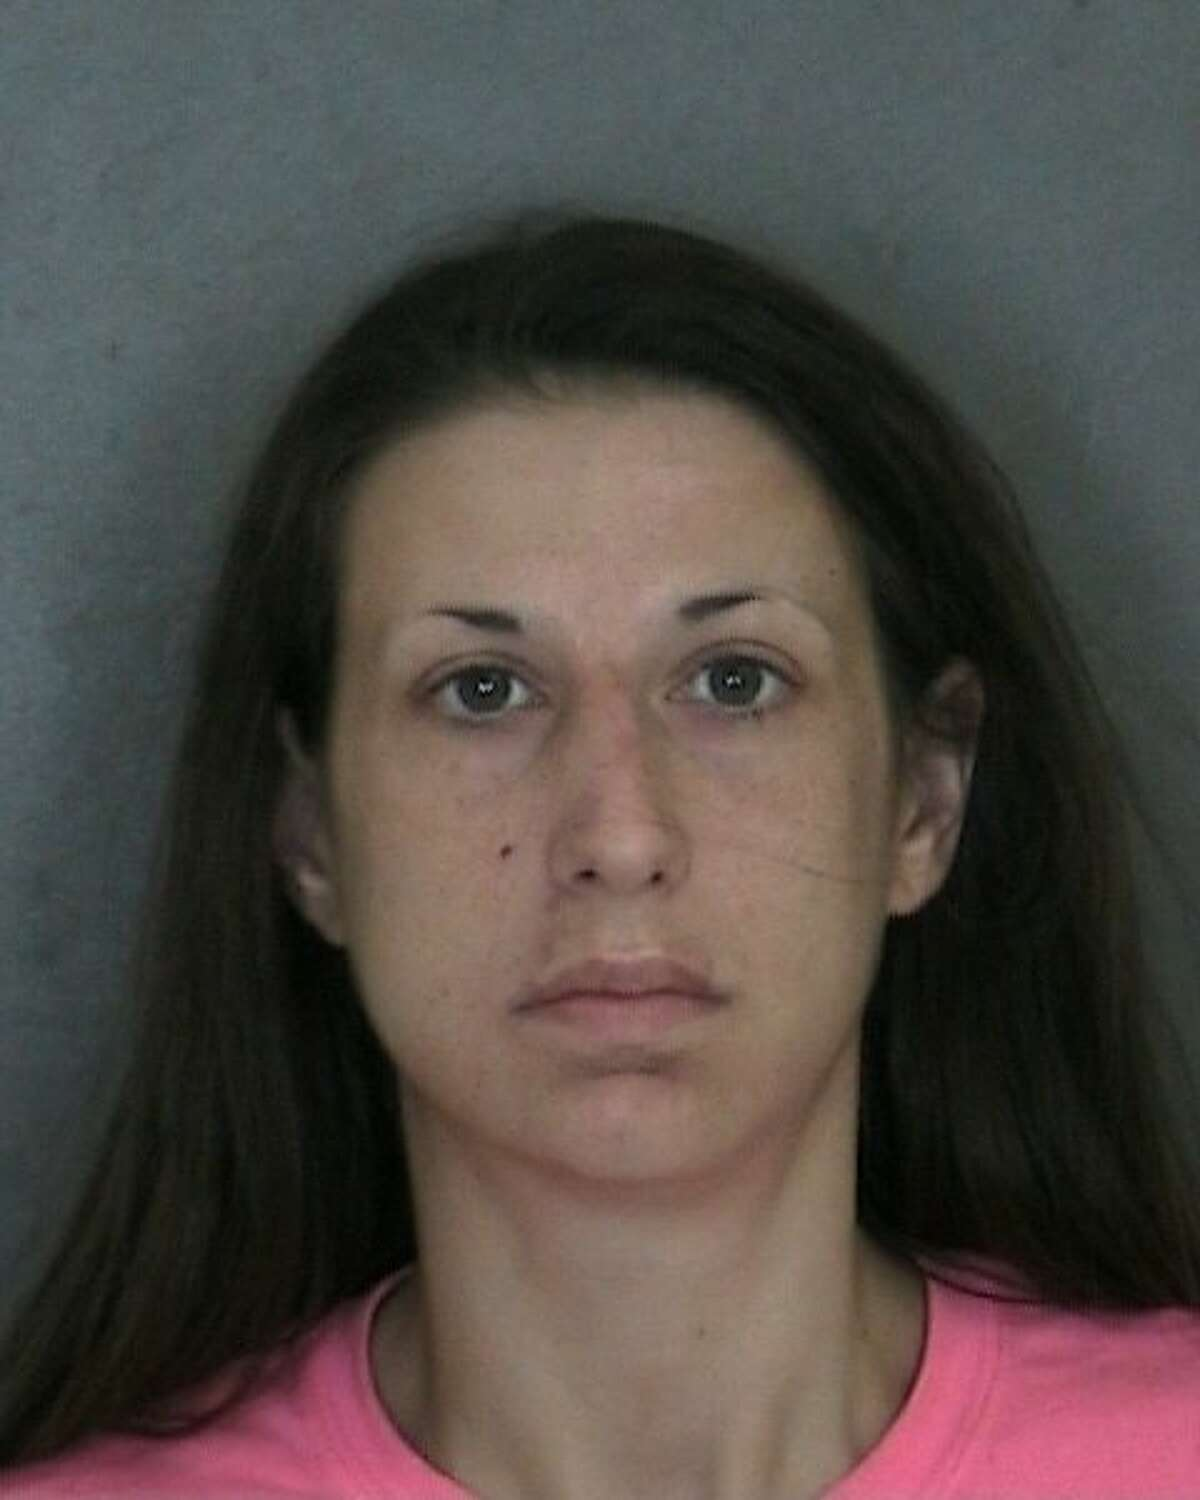 Maigan Richardson, of Corinth, charged with crack cocaine sales in Glens Falls